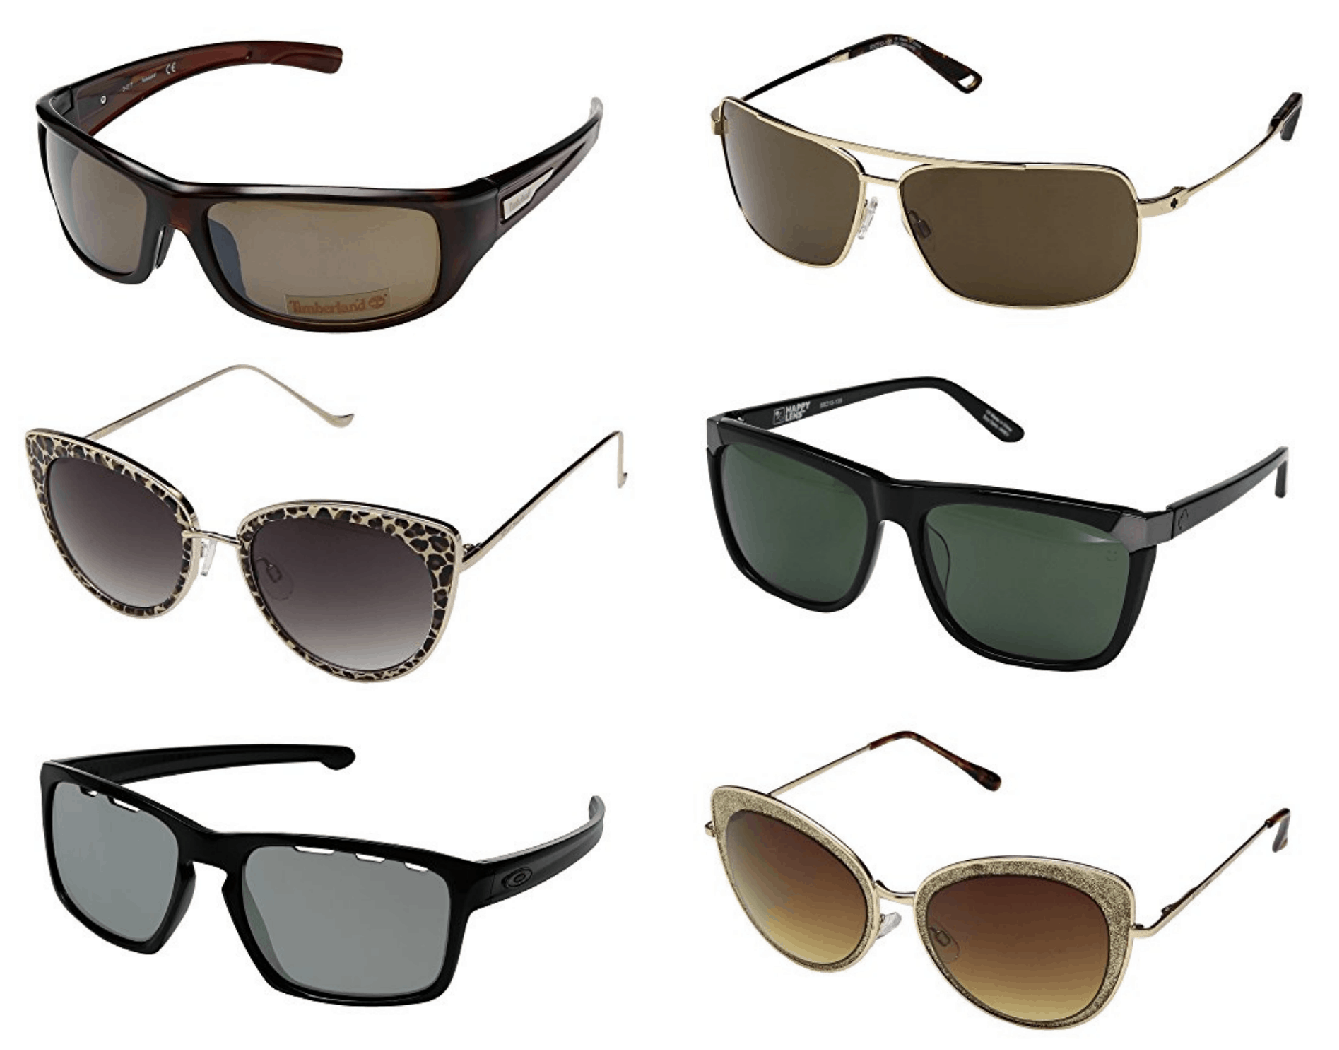 7c4c90fbb8c4 6PM | Up to 70% Off Sunglasses (Oakley, Under Armour, Michael Kors, and  More)